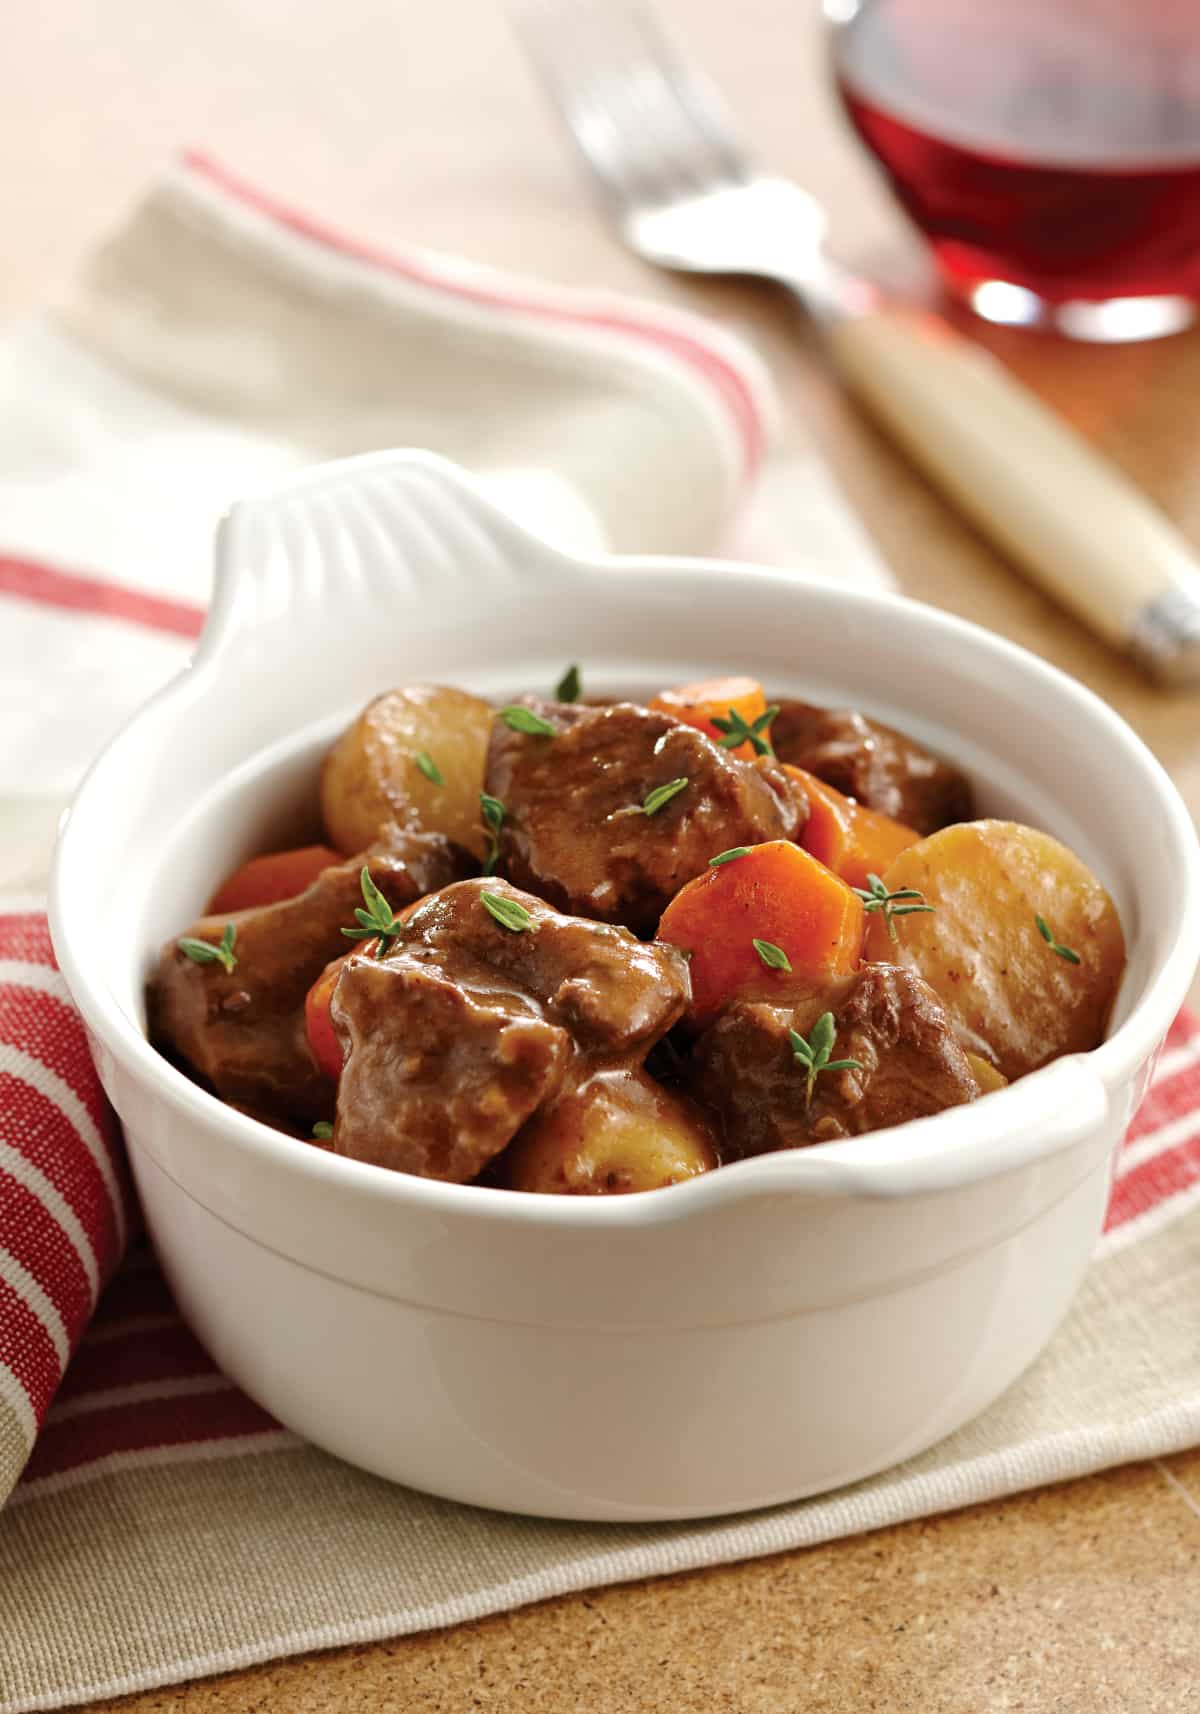 Instant Pot Beef Stew served in a white ceramic bowl on a red and white cloth